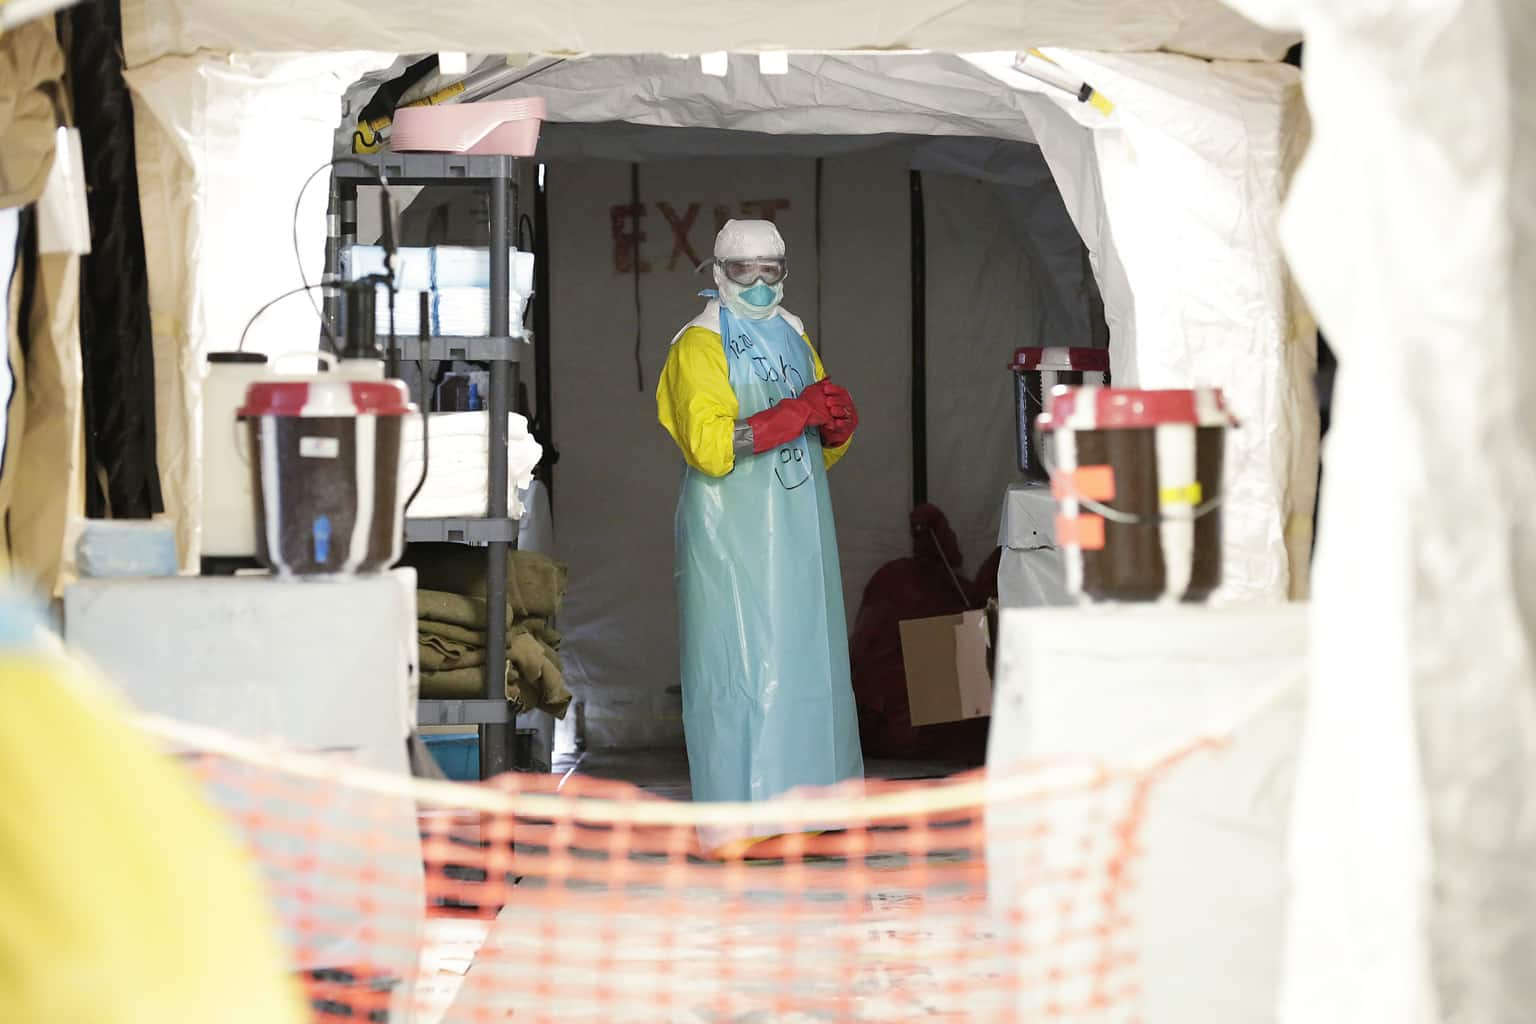 Scene from a United States-run Ebola treatment facility in Monrovia, Liberia, during Secretary-General Ban Ki-moon's visit to the facility.